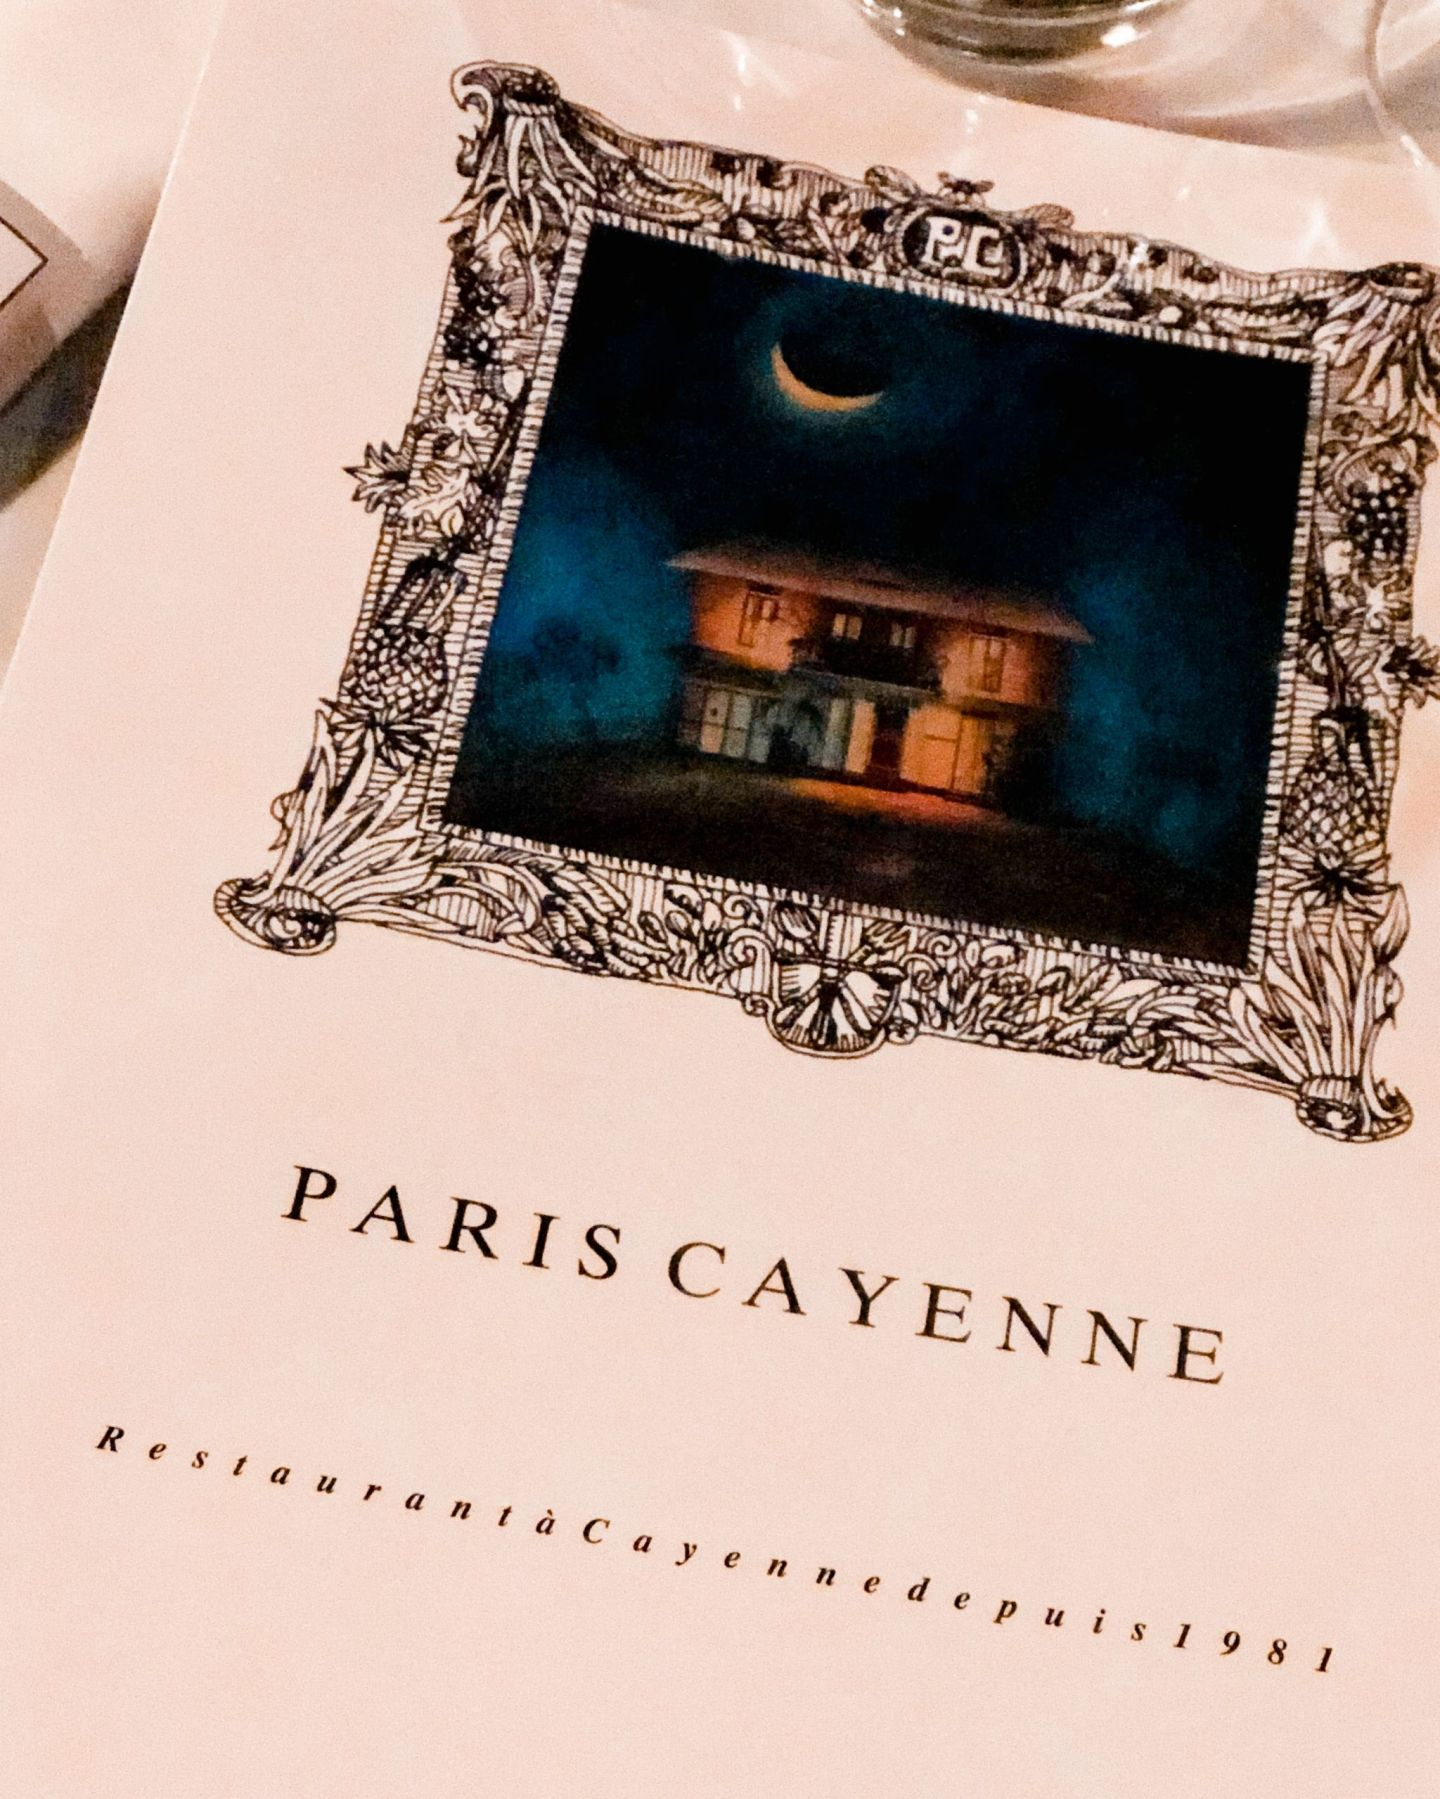 Paris Cayenne Restaurant